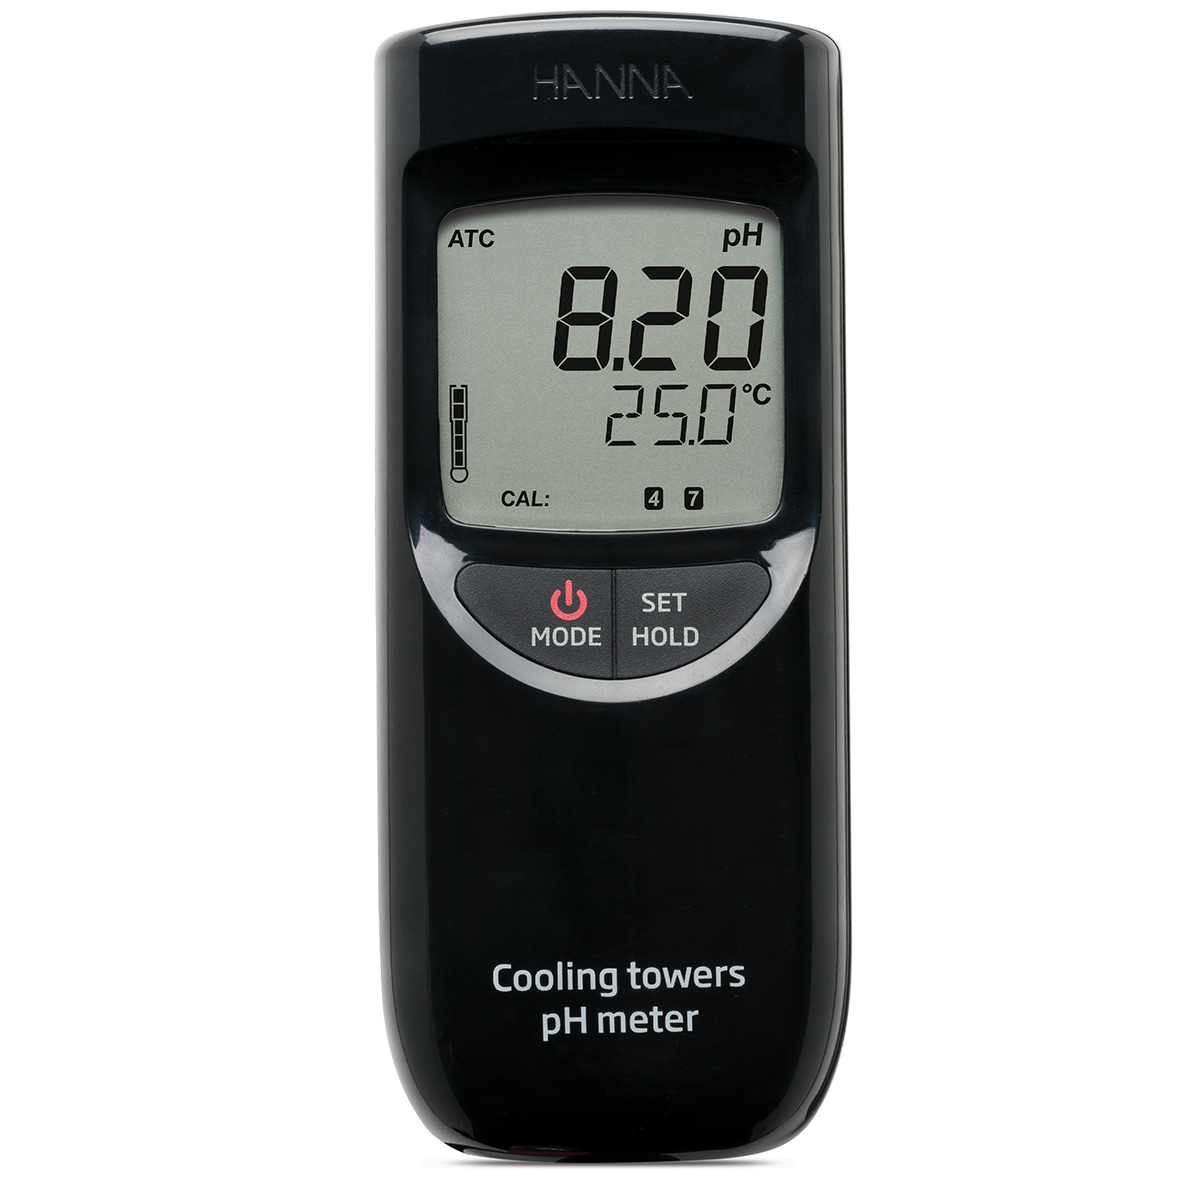 Boiler and Cooling Tower pH Portable Meter - HI99141